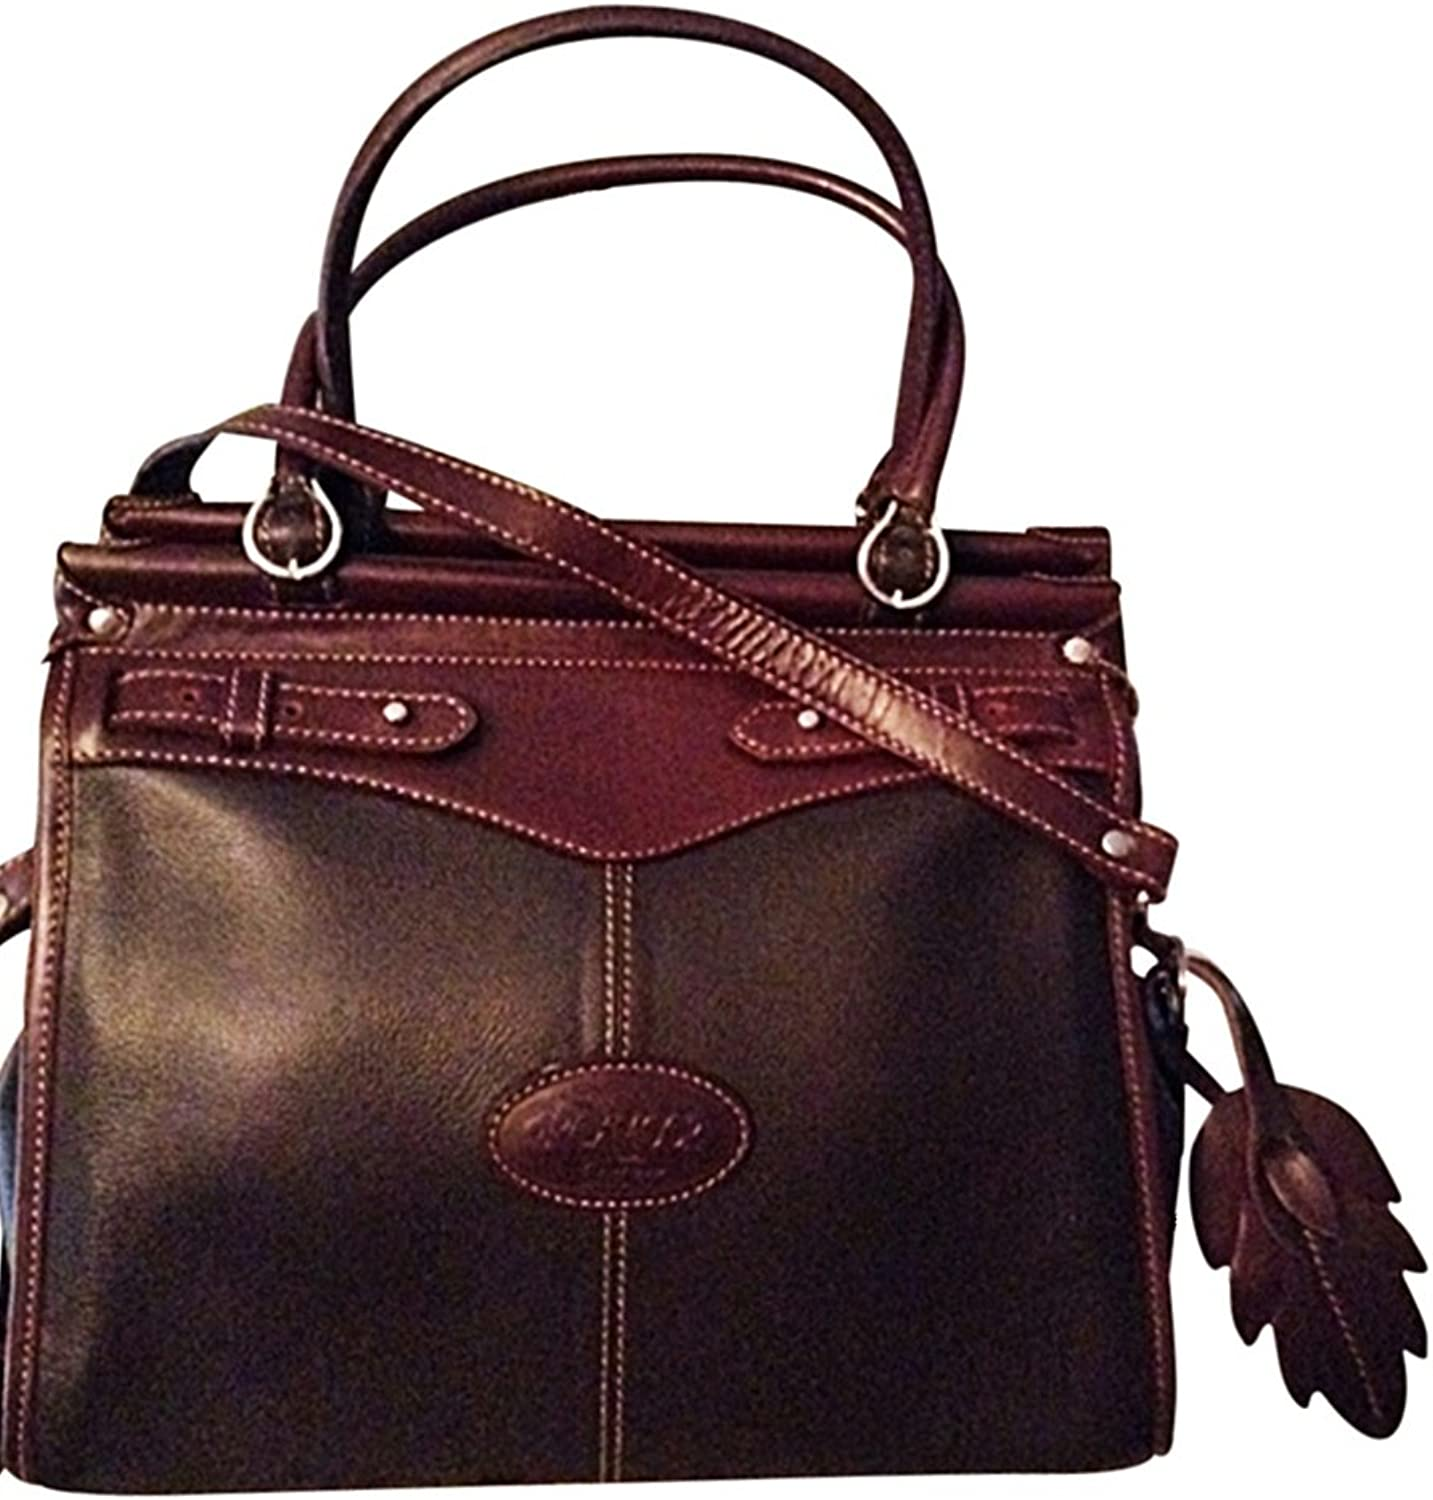 100% Genuine Leather Travel Tote Handbag